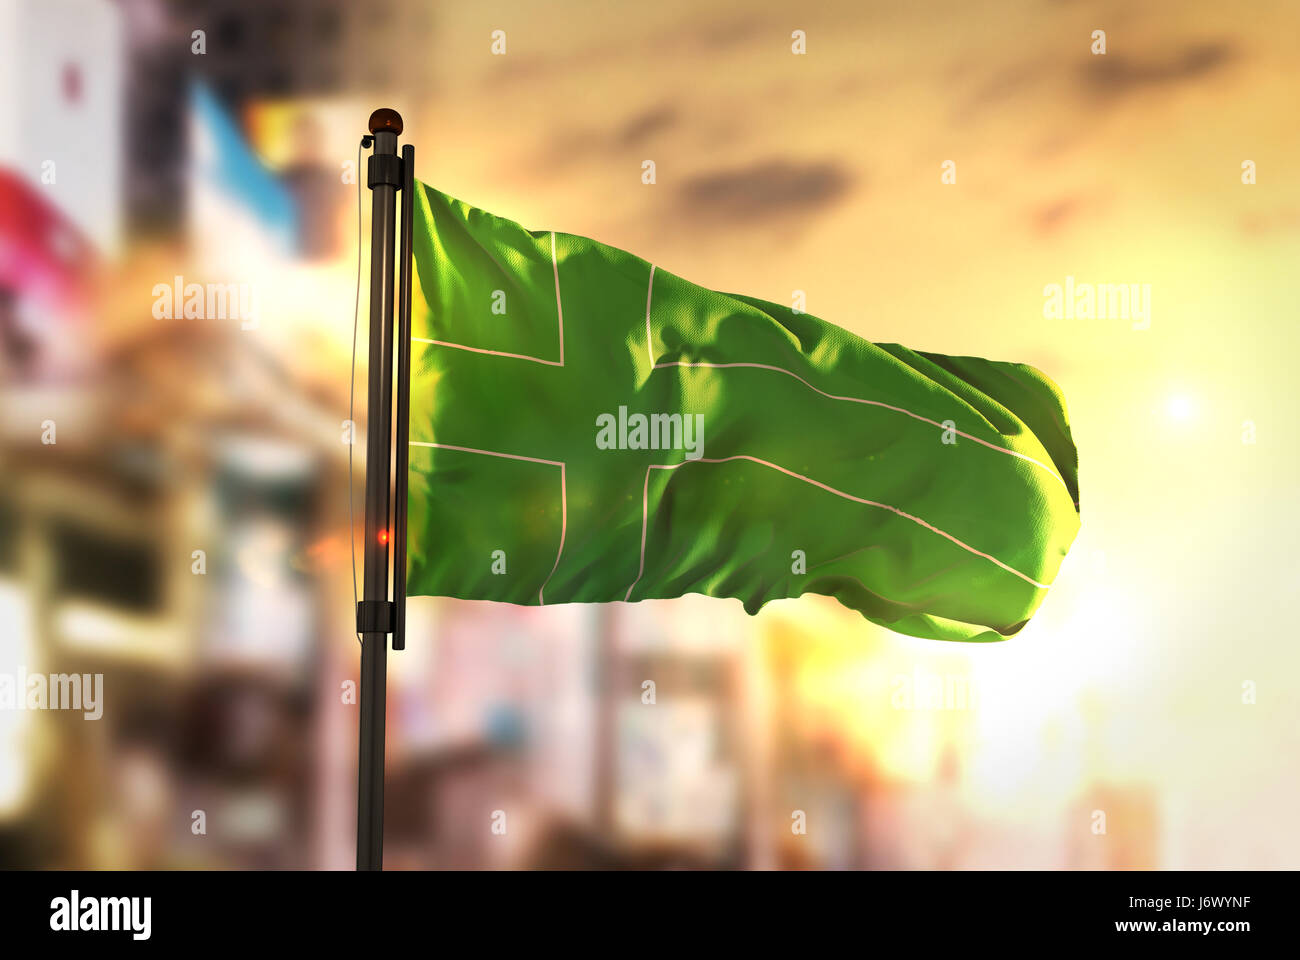 Ladonia Flag Against City Blurred Background At Sunrise Backlight Stock Photo